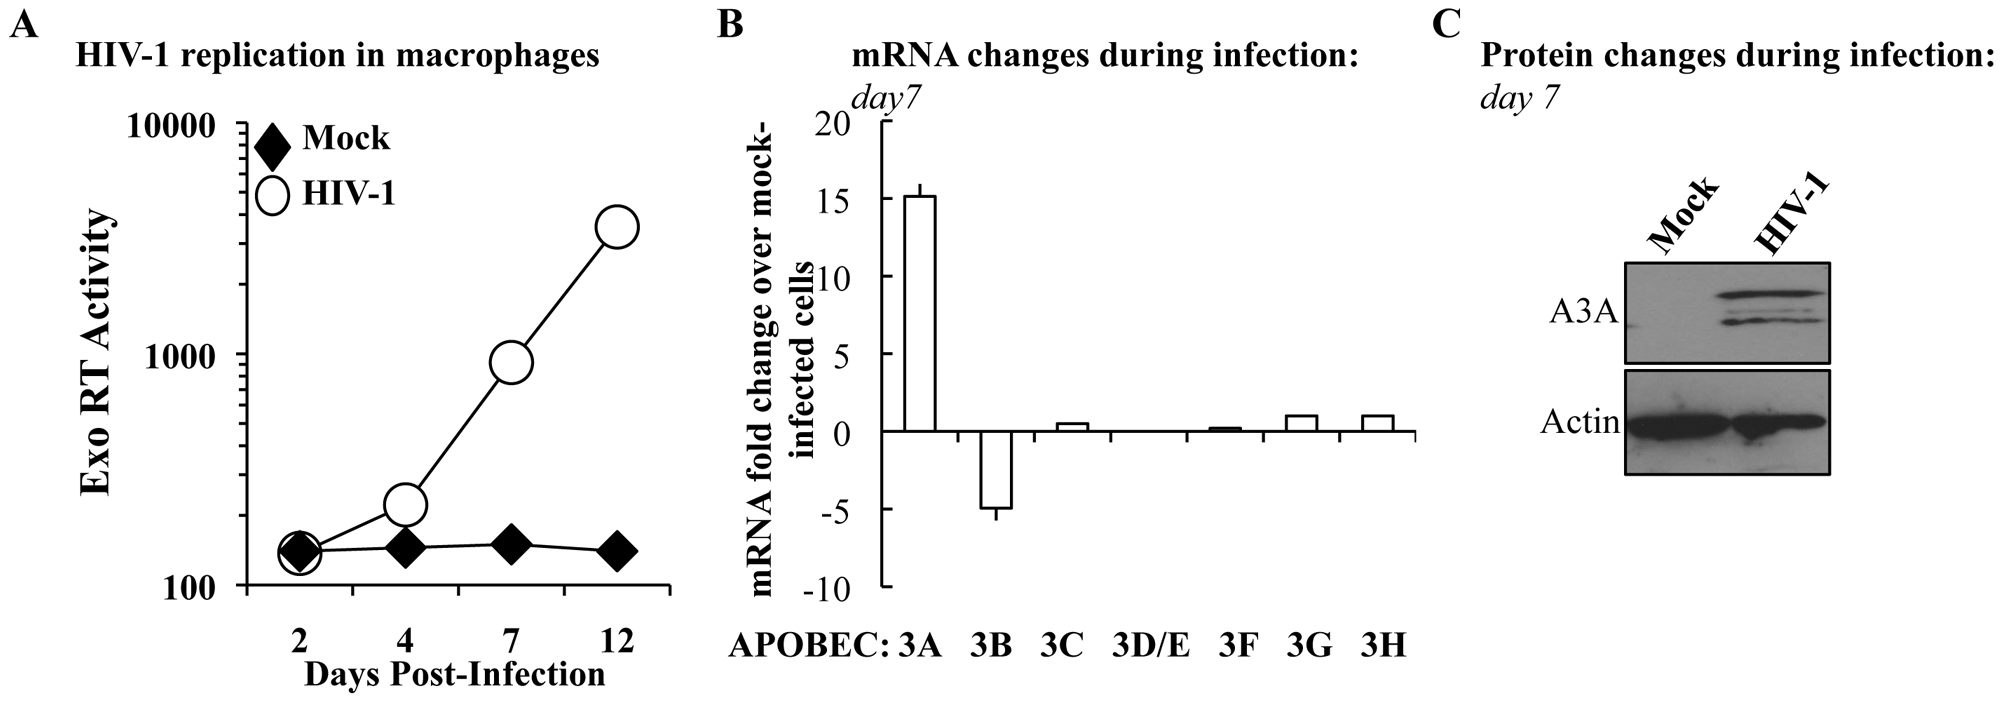 The expression of A3A is specifically increased during HIV-1 spread in infected macrophages.